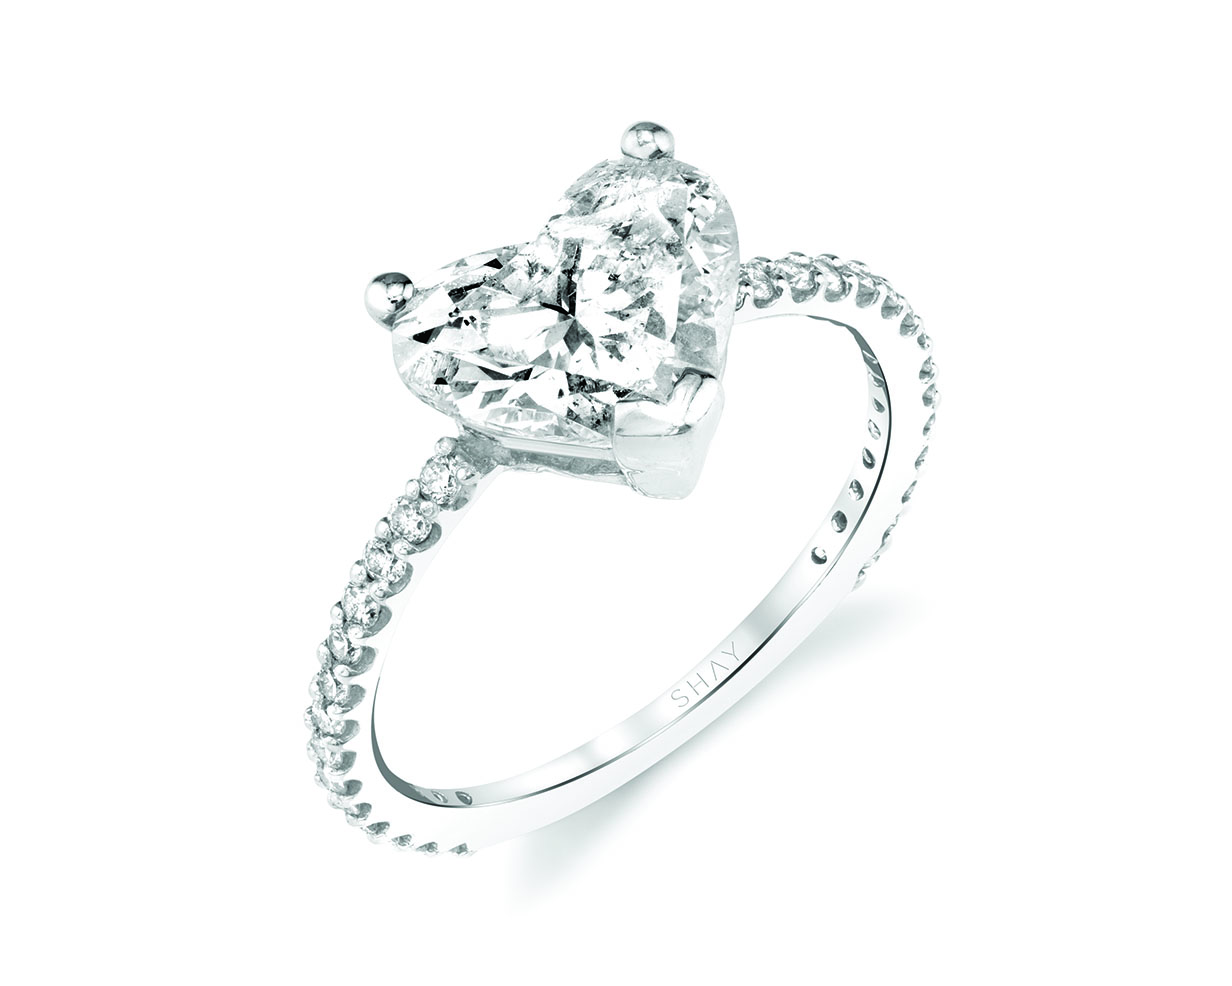 Heart cut diamond center stone engagement ring with platinum pave band